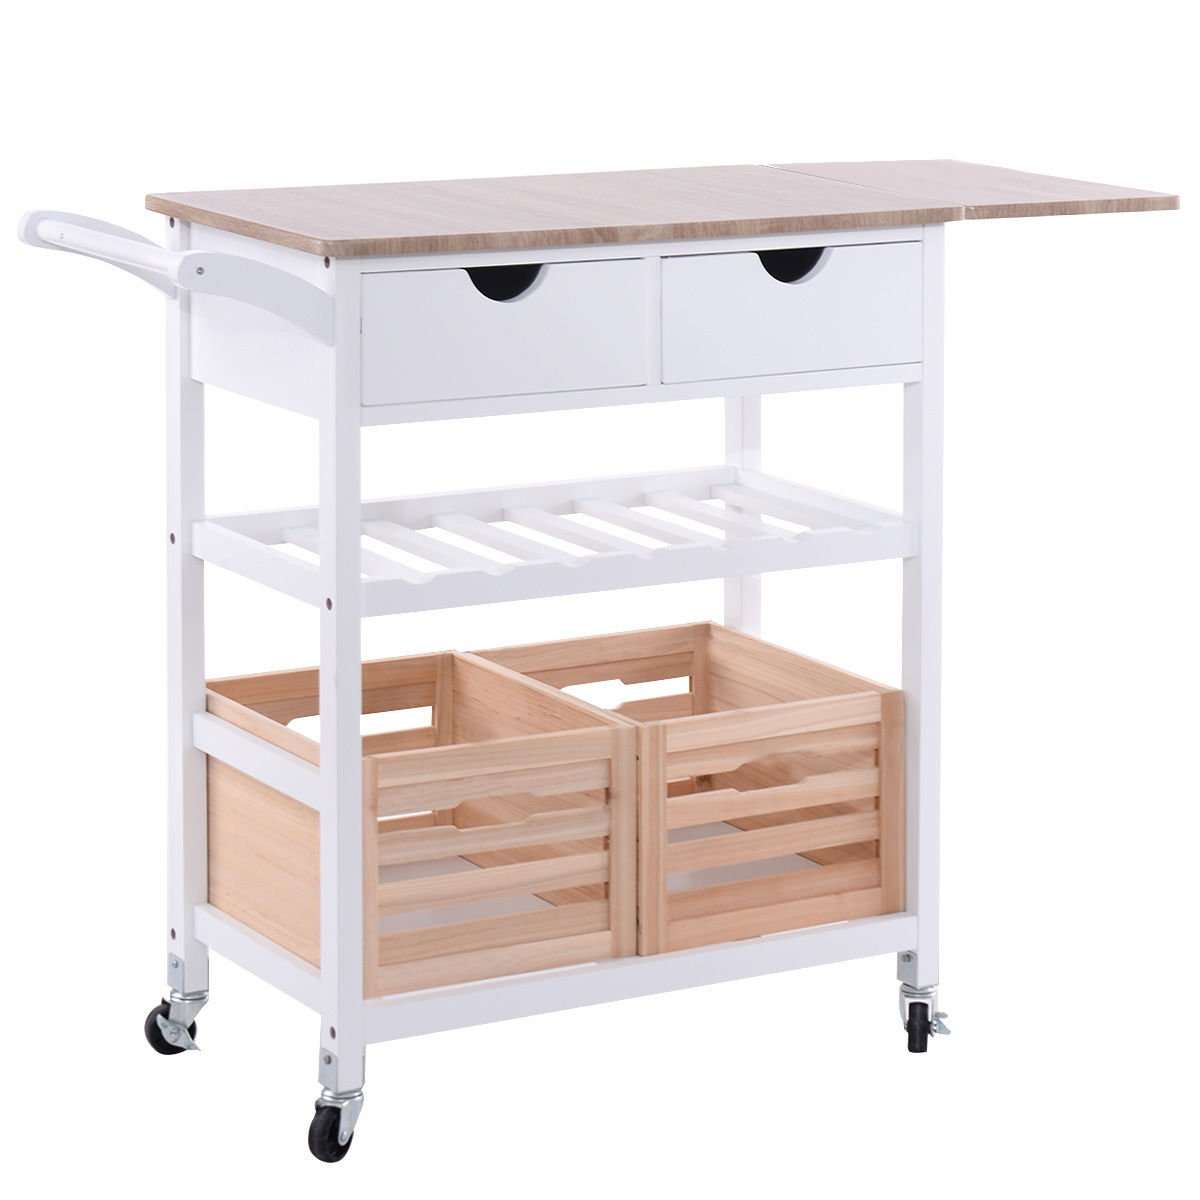 Amazon.com - Costzon Kitchen Trolley Island Cart Dining Storage with ...